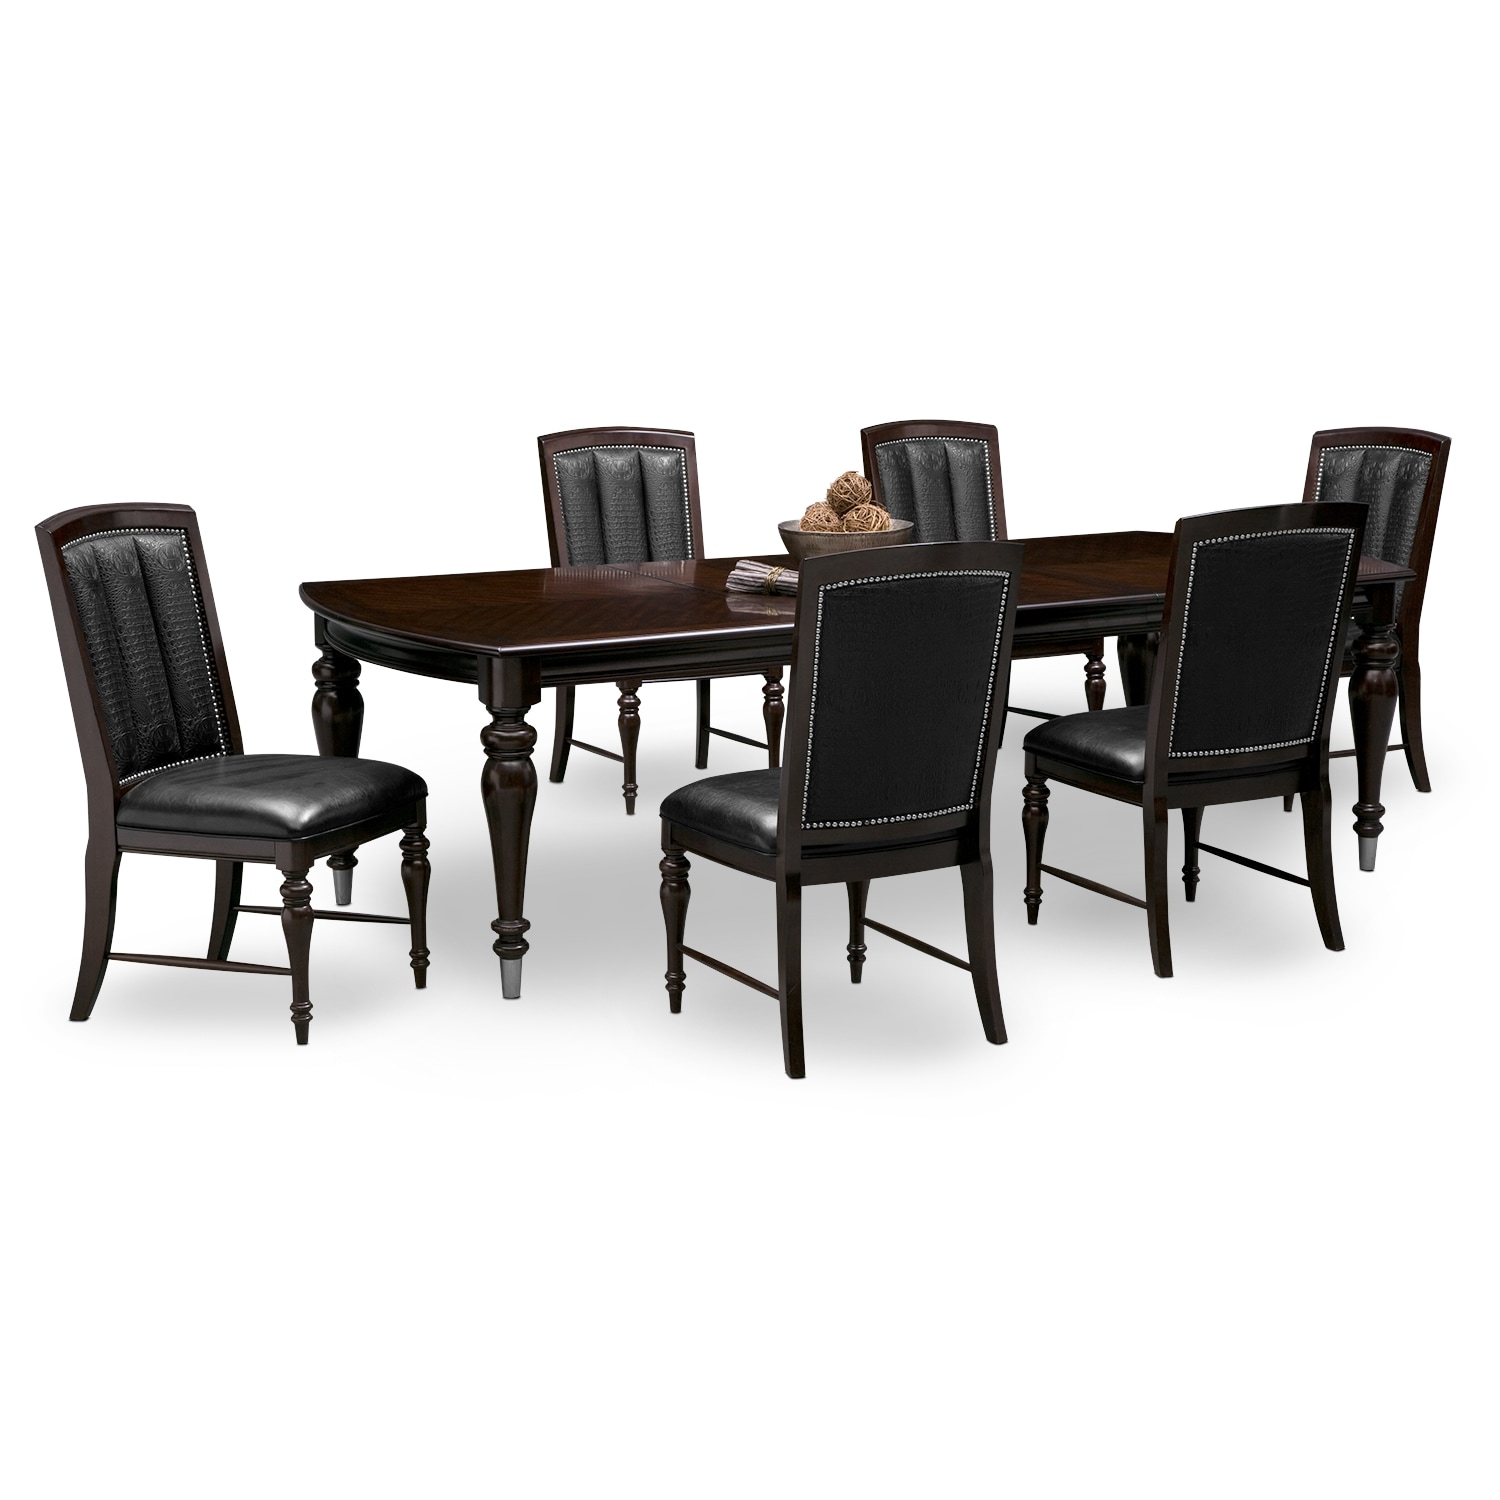 Dining Room Furniture - Esquire Table and 6 Chairs - Cherry